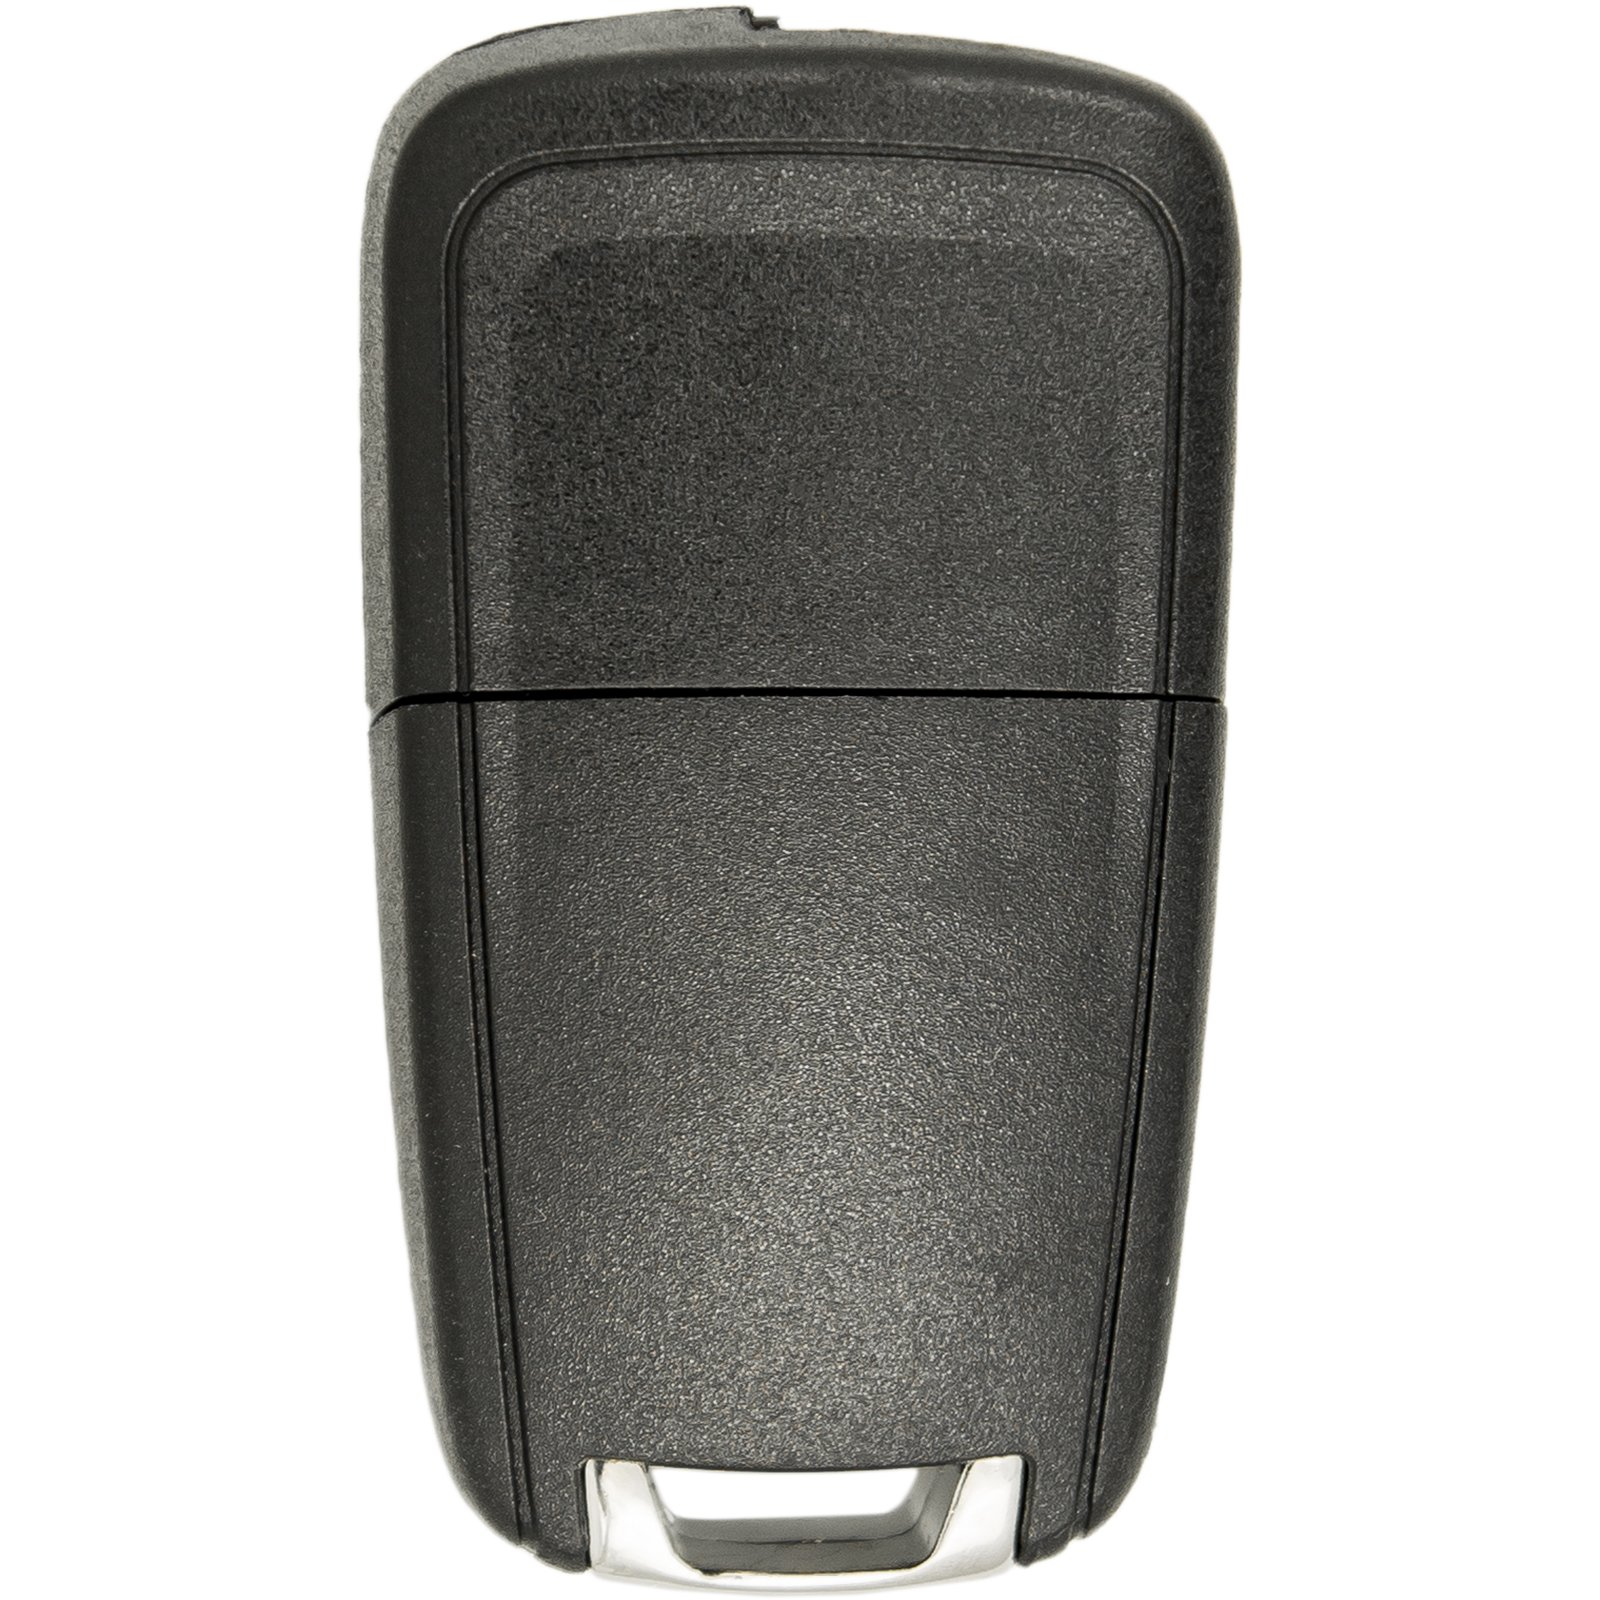 Keyless2Go Replacement Keyless Remote 4 Button Flip Car Key Fob For OHT01060512 by Keyless2Go (Image #2)